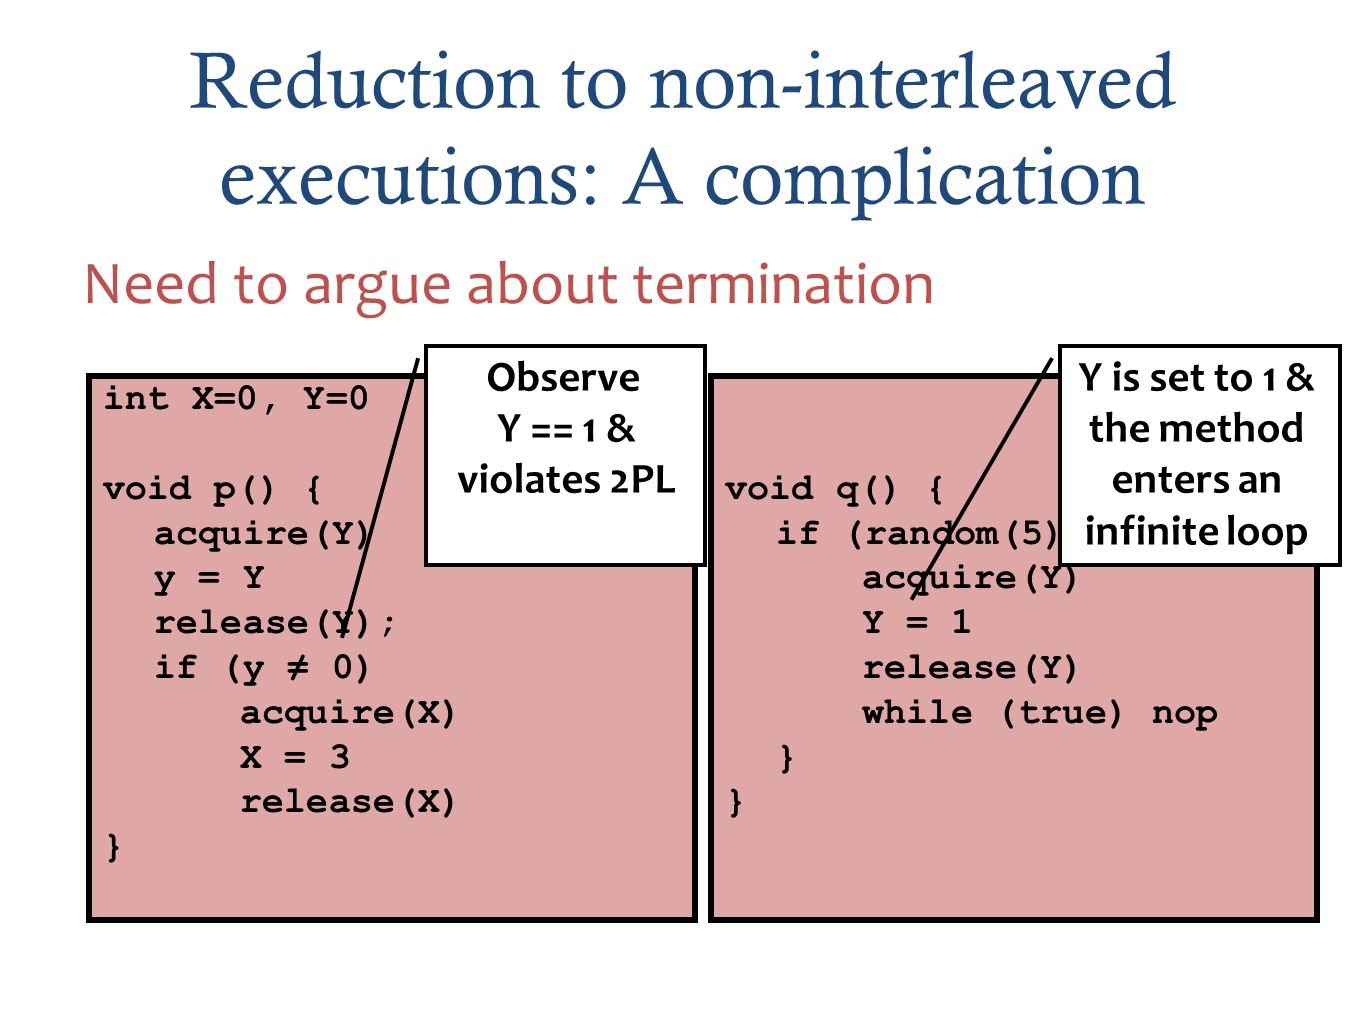 Reduction to non-interleaved executions: A complication Need to argue about termination int X=0, Y=0 void p() { acquire(Y) y = Y release(Y); if (y 0) acquire(X) X = 3 release(X) } void q() { if (random(5) == 3){ acquire(Y) Y = 1 release(Y) while (true) nop } Y is set to 1 & the method enters an infinite loop Observe Y == 1 & violates 2PL